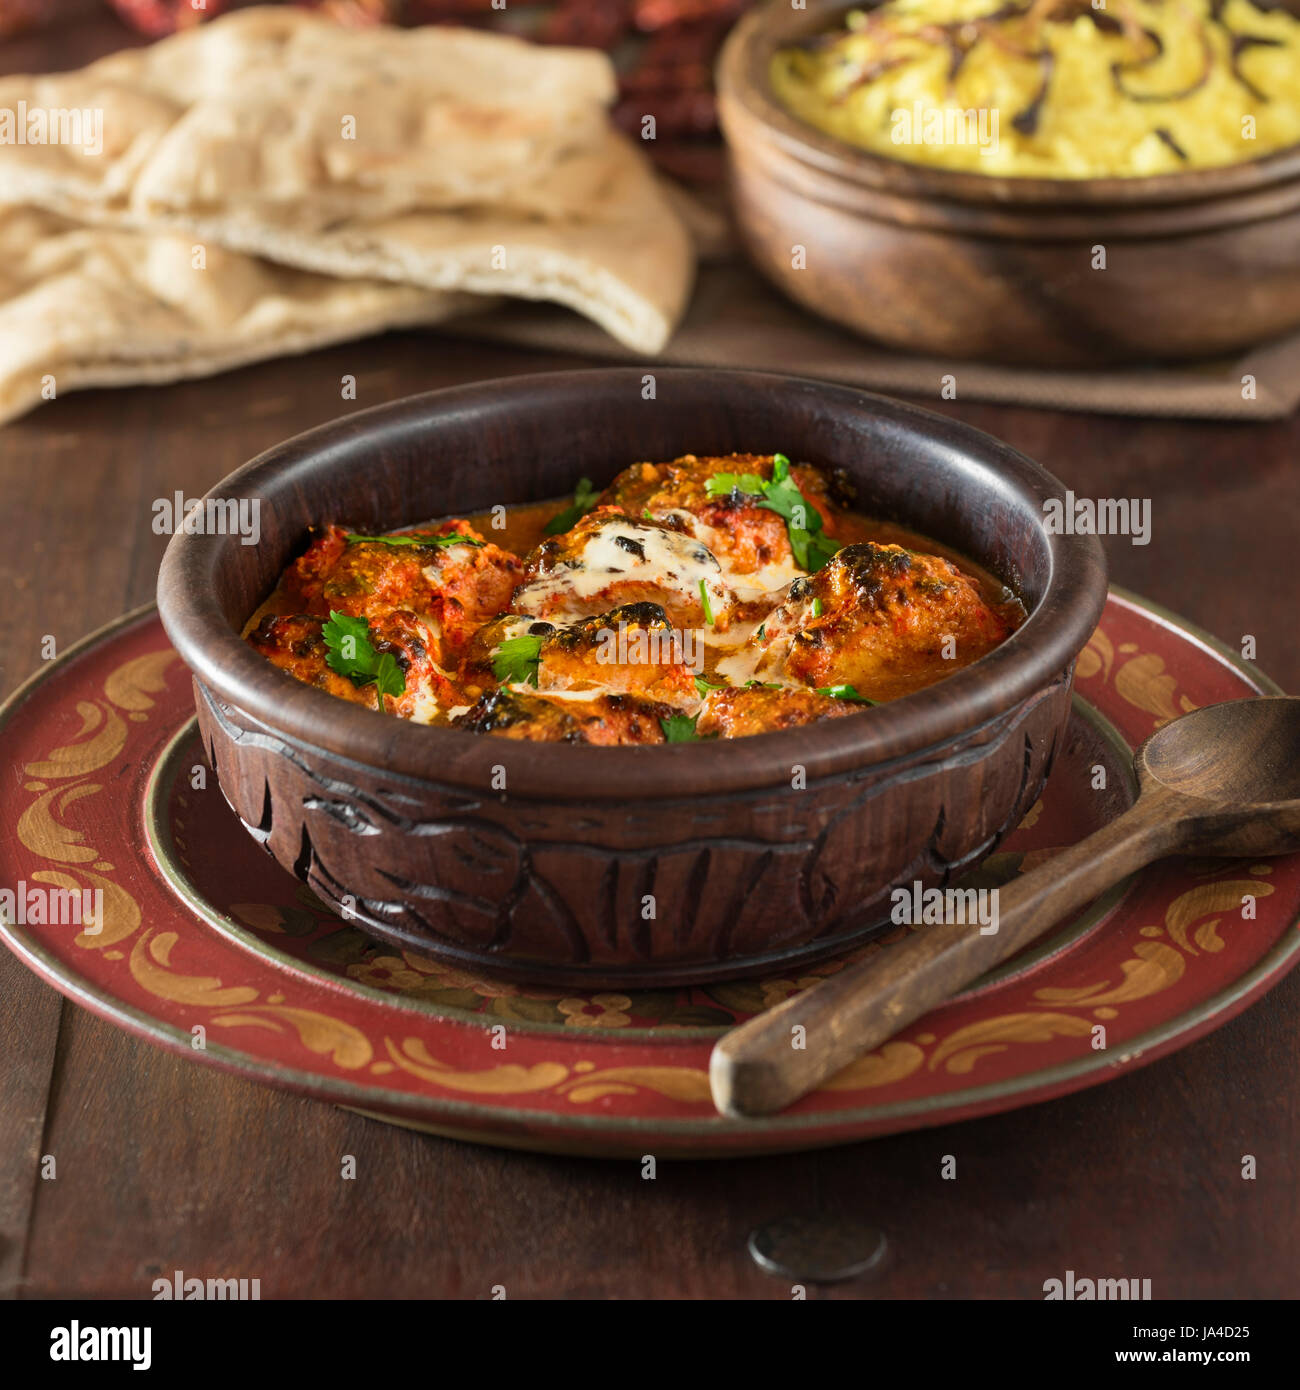 Murgh makhani indian butter chicken curry india food stock photo murgh makhani indian butter chicken curry india food forumfinder